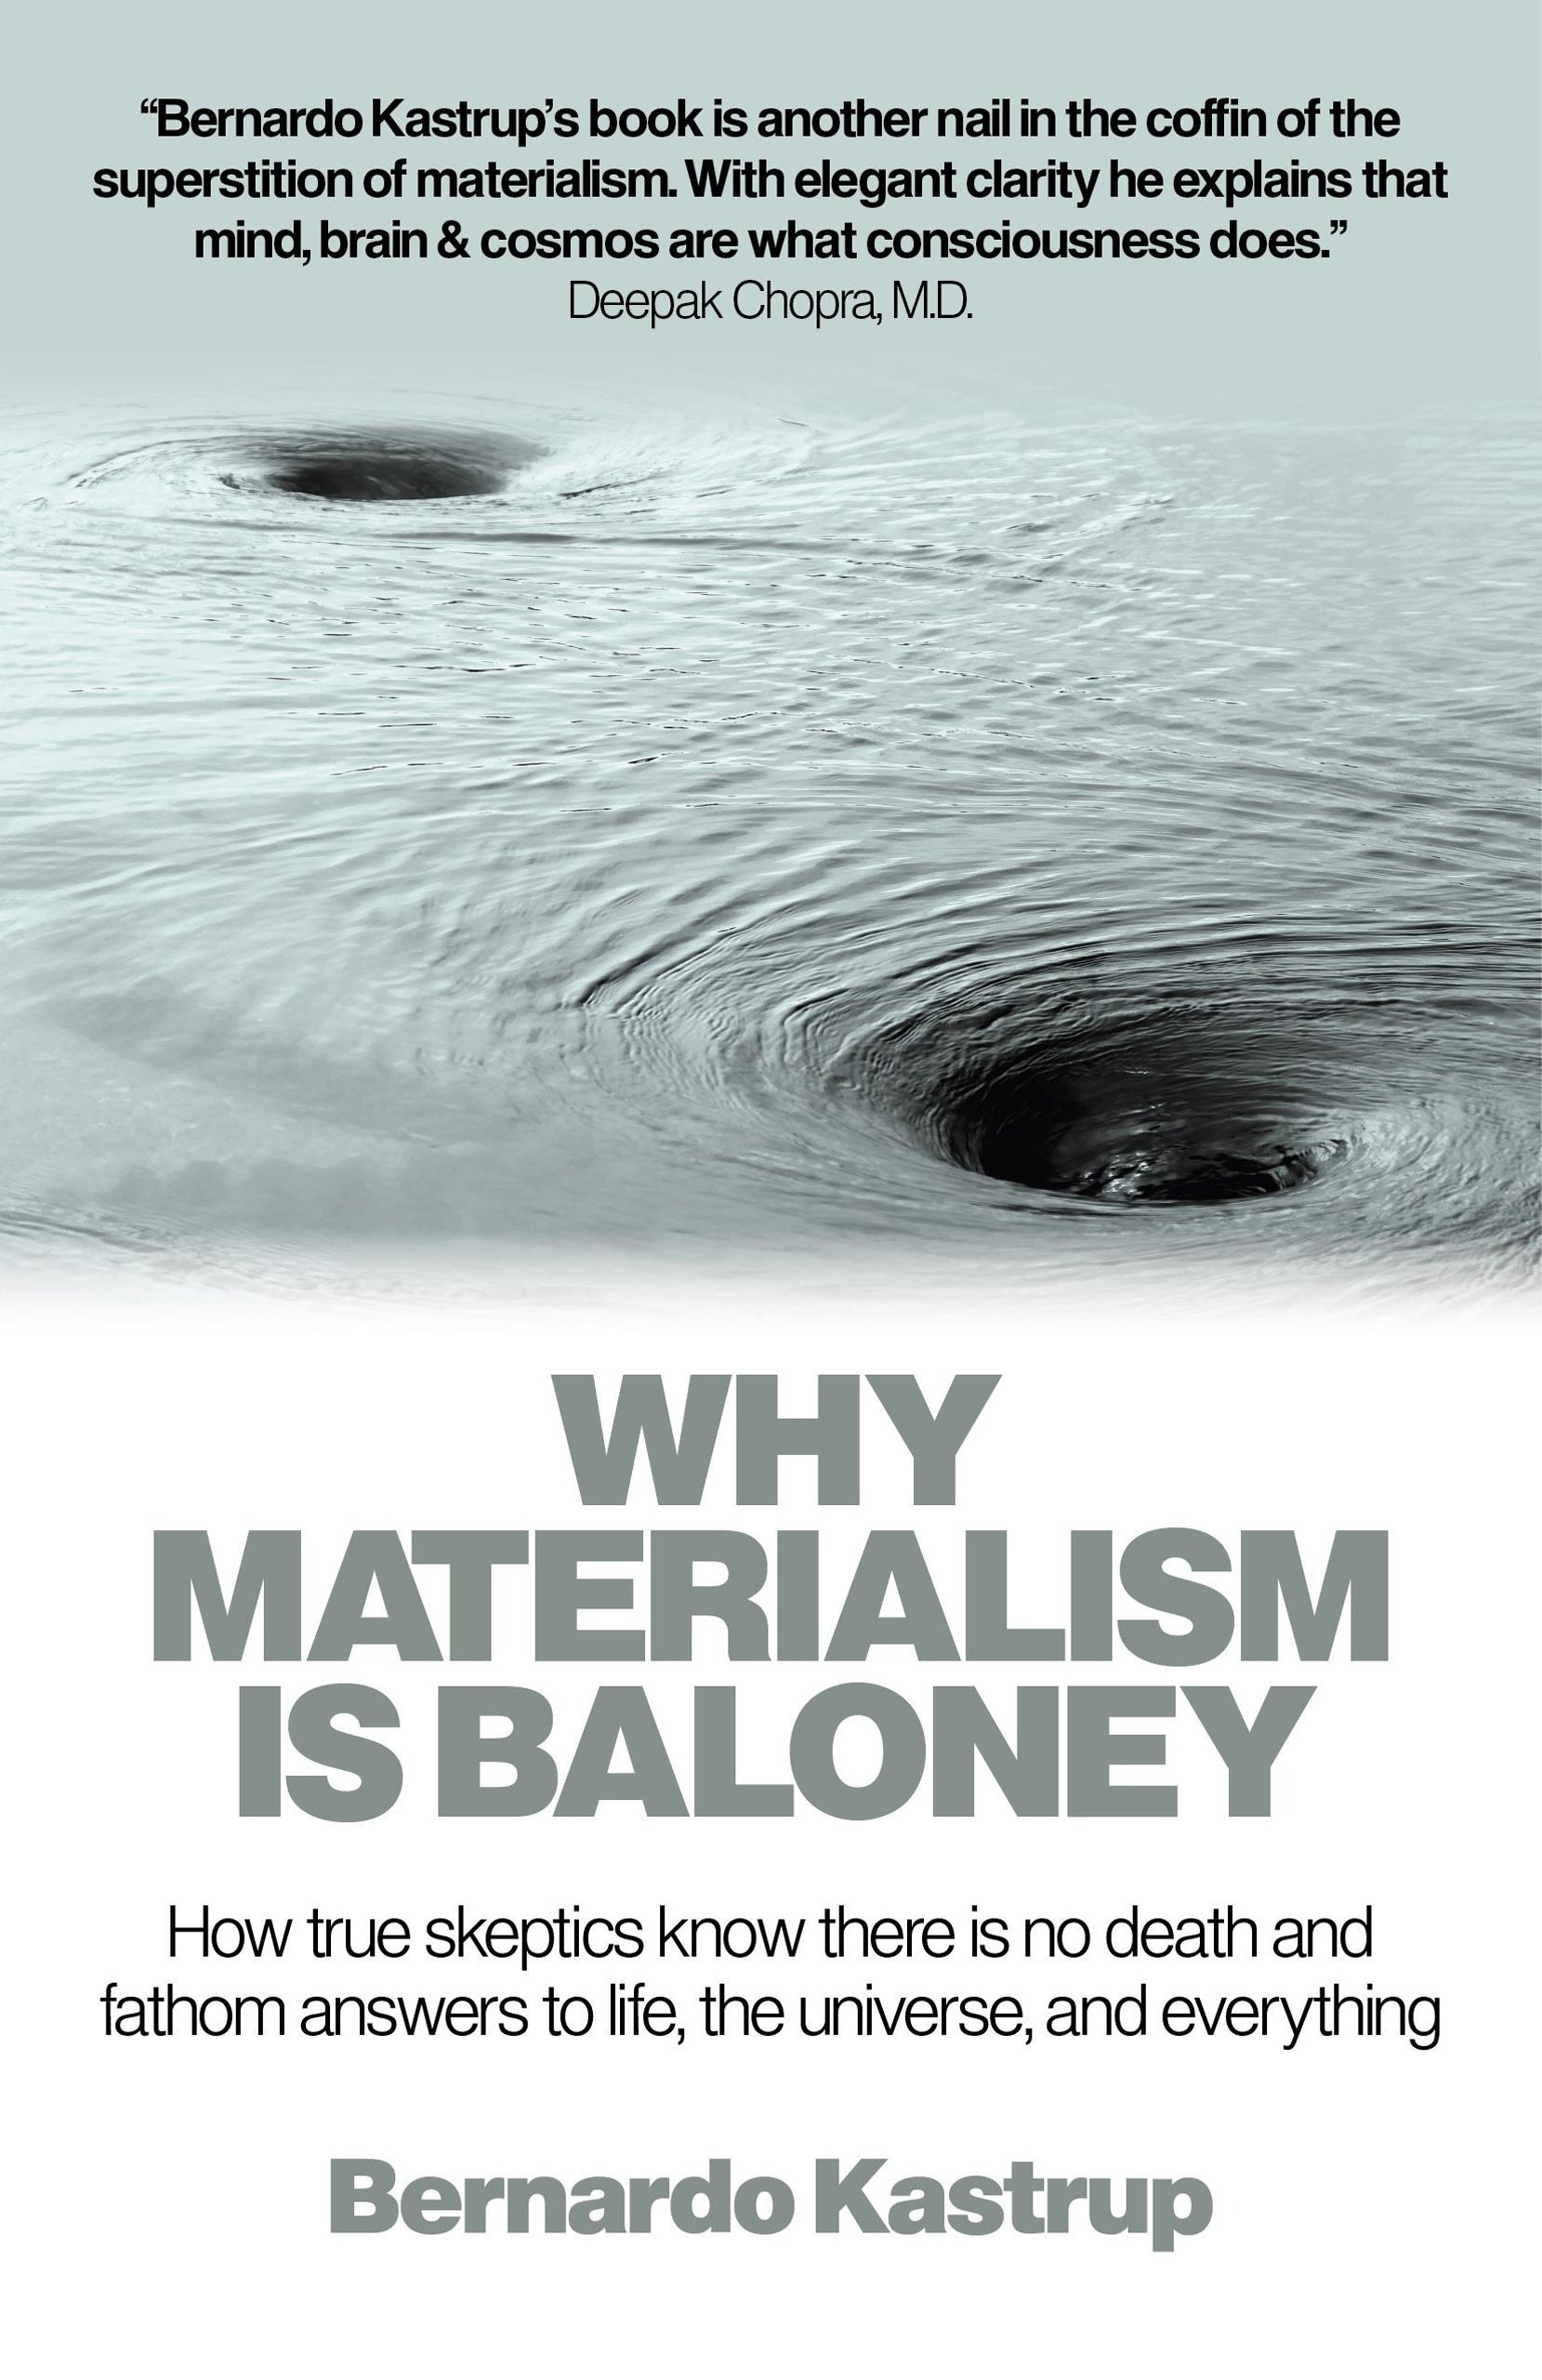 why materialism is baloney how true skeptics know there is no why materialism is baloney how true skeptics know there is no death and fathom answers to life the universe and everything bernardo kastrup